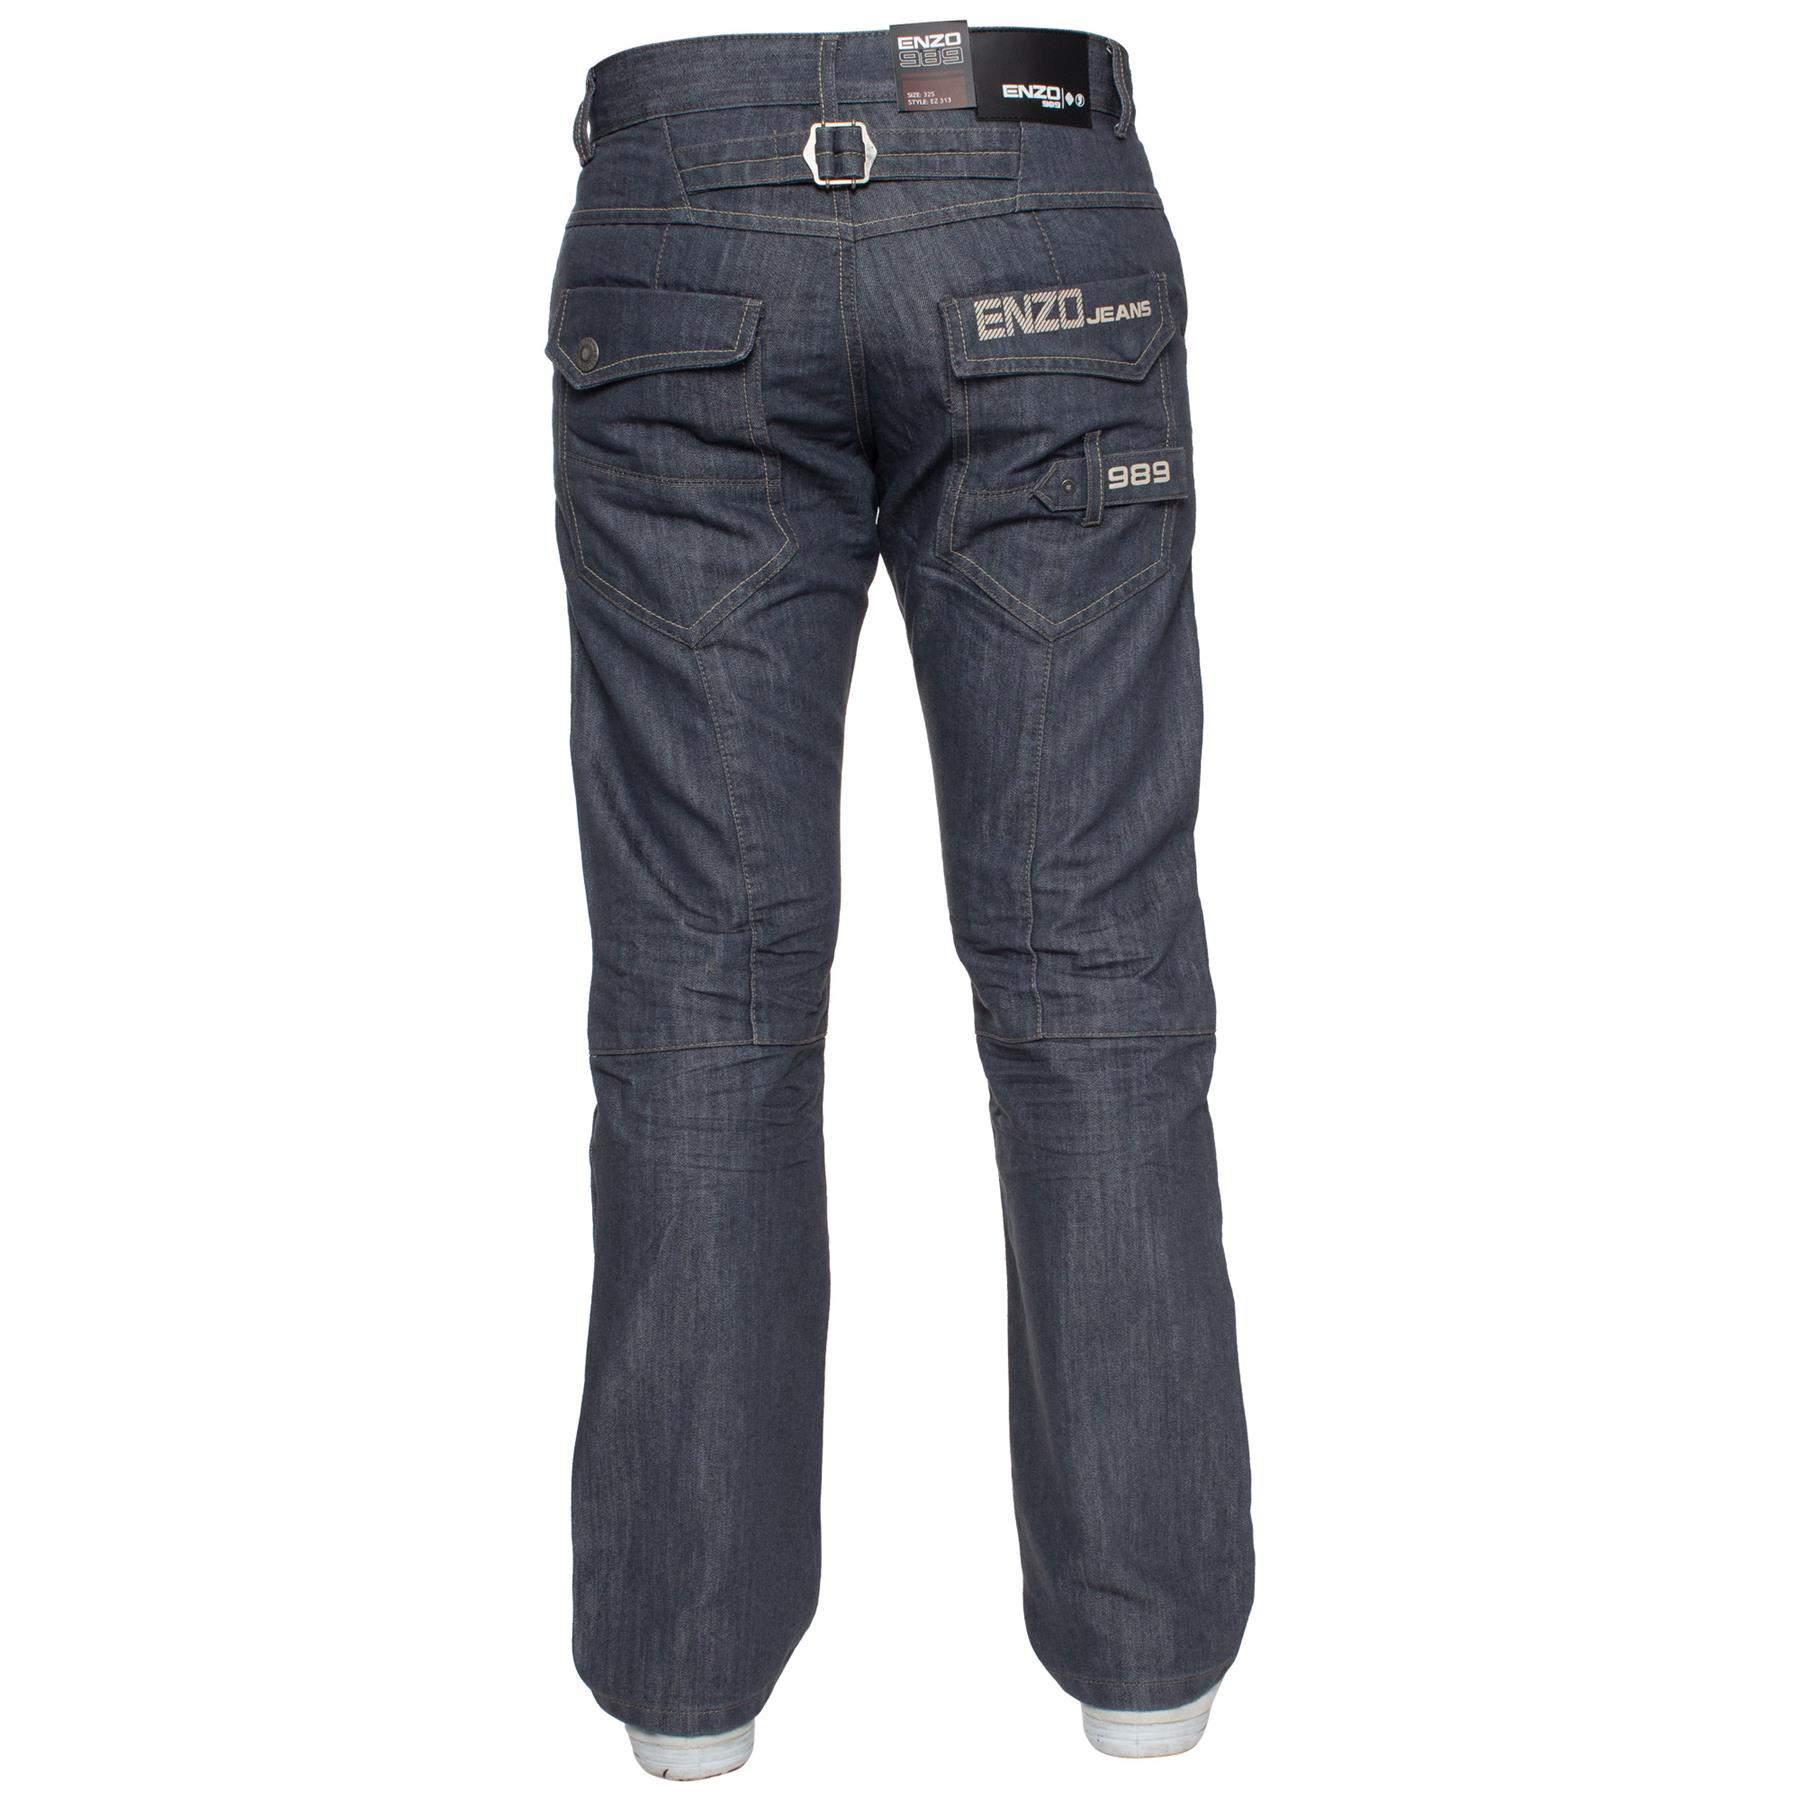 Enzo-Mens-Jeans-Big-Tall-Leg-King-Size-Denim-Pants-Chino-Trousers-Waist-44-034-60-034 miniature 91